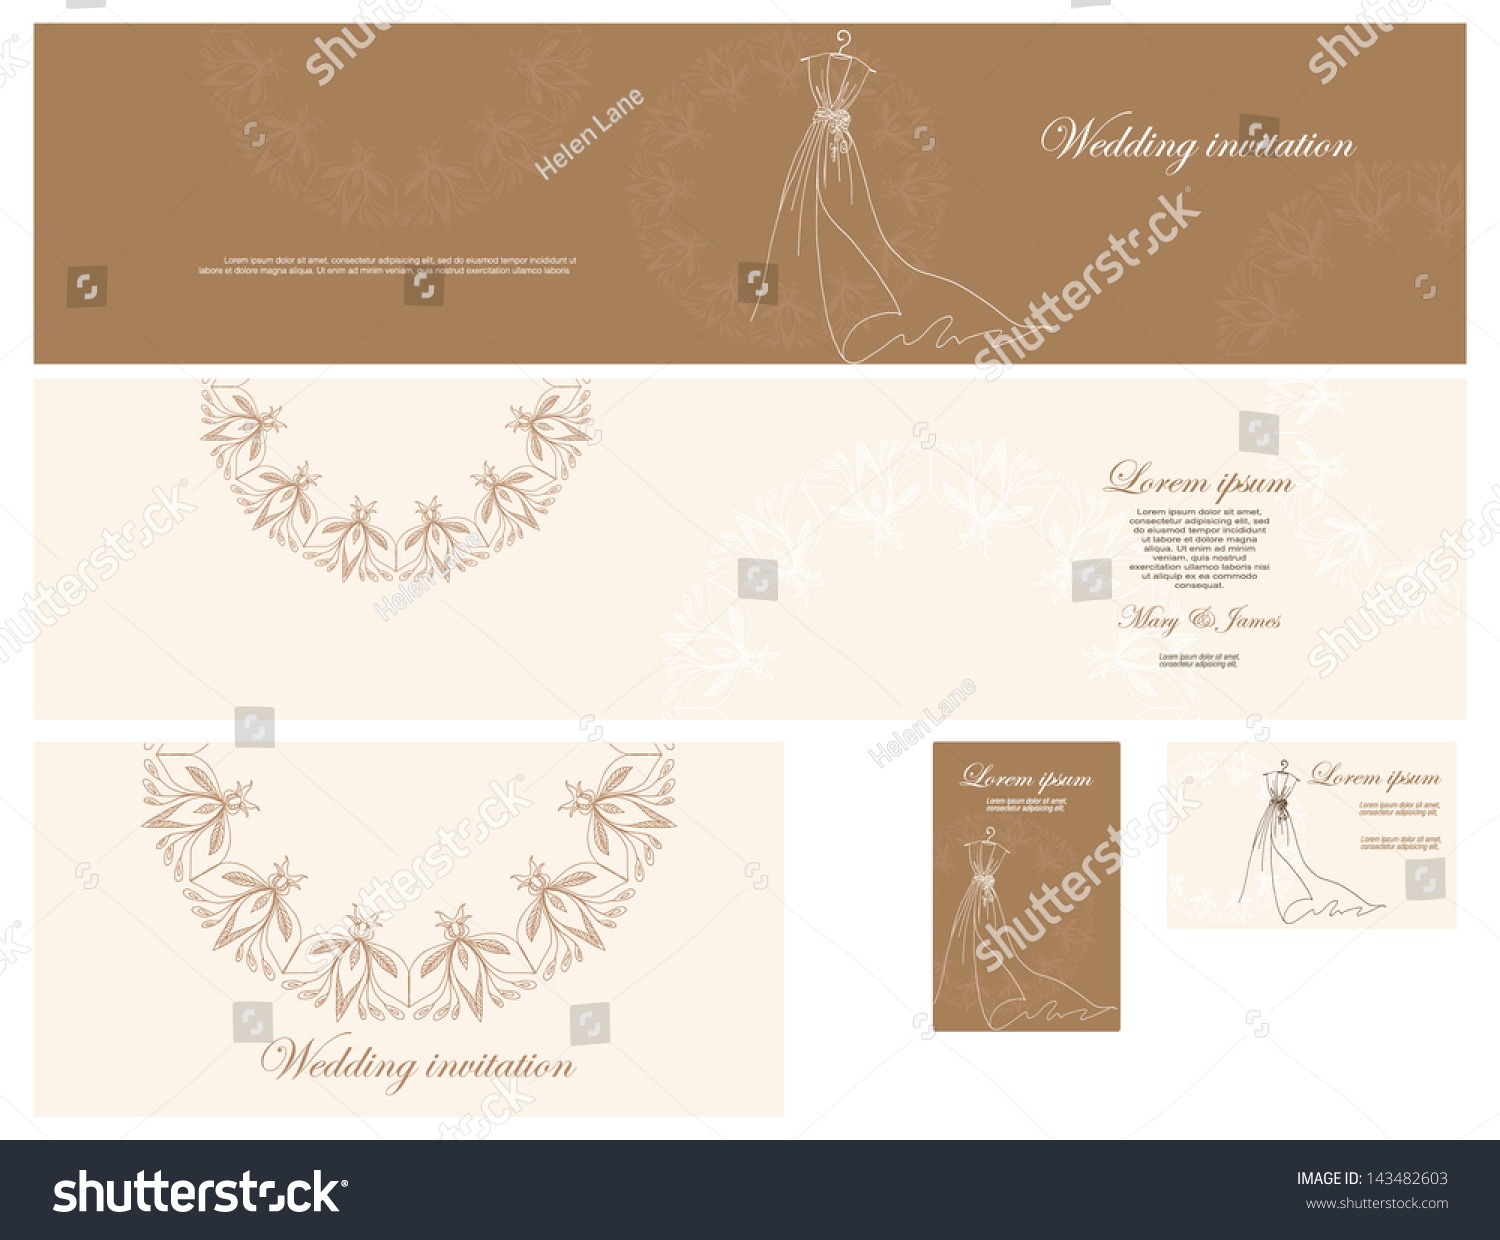 Set wedding invitation business cards gentle stock vector set of wedding invitation business cards in gentle tones of gold decorated with magicingreecefo Choice Image